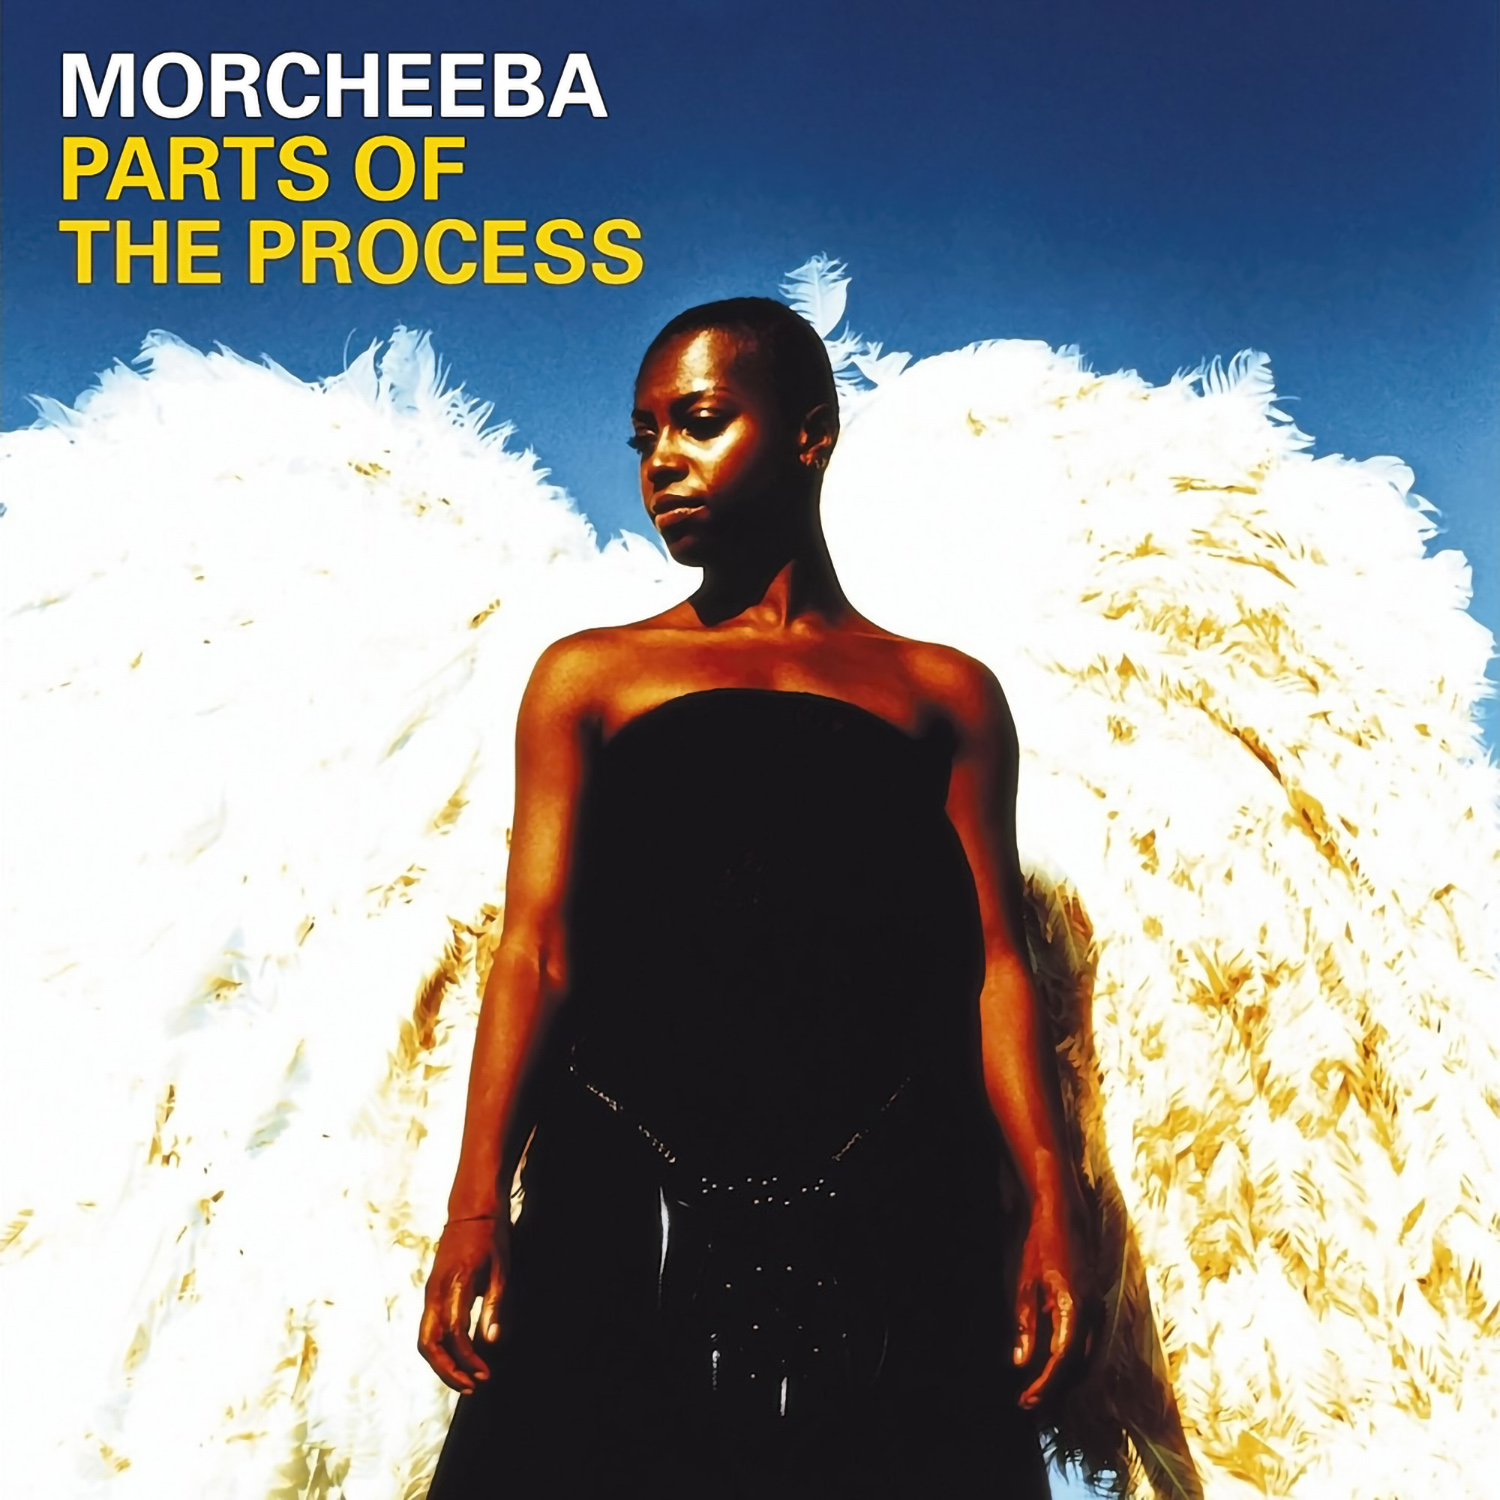 Morcheeba, Parts of the Process